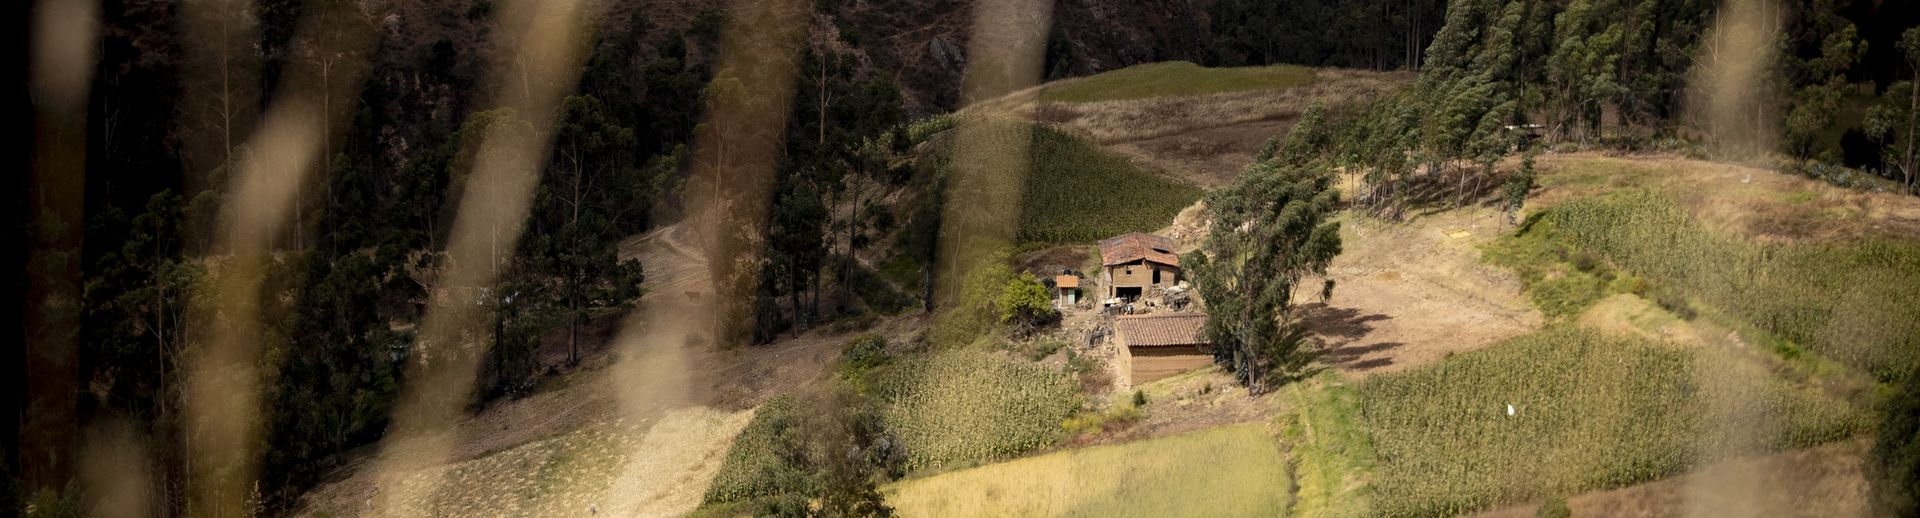 A house in the countryside of Peru.